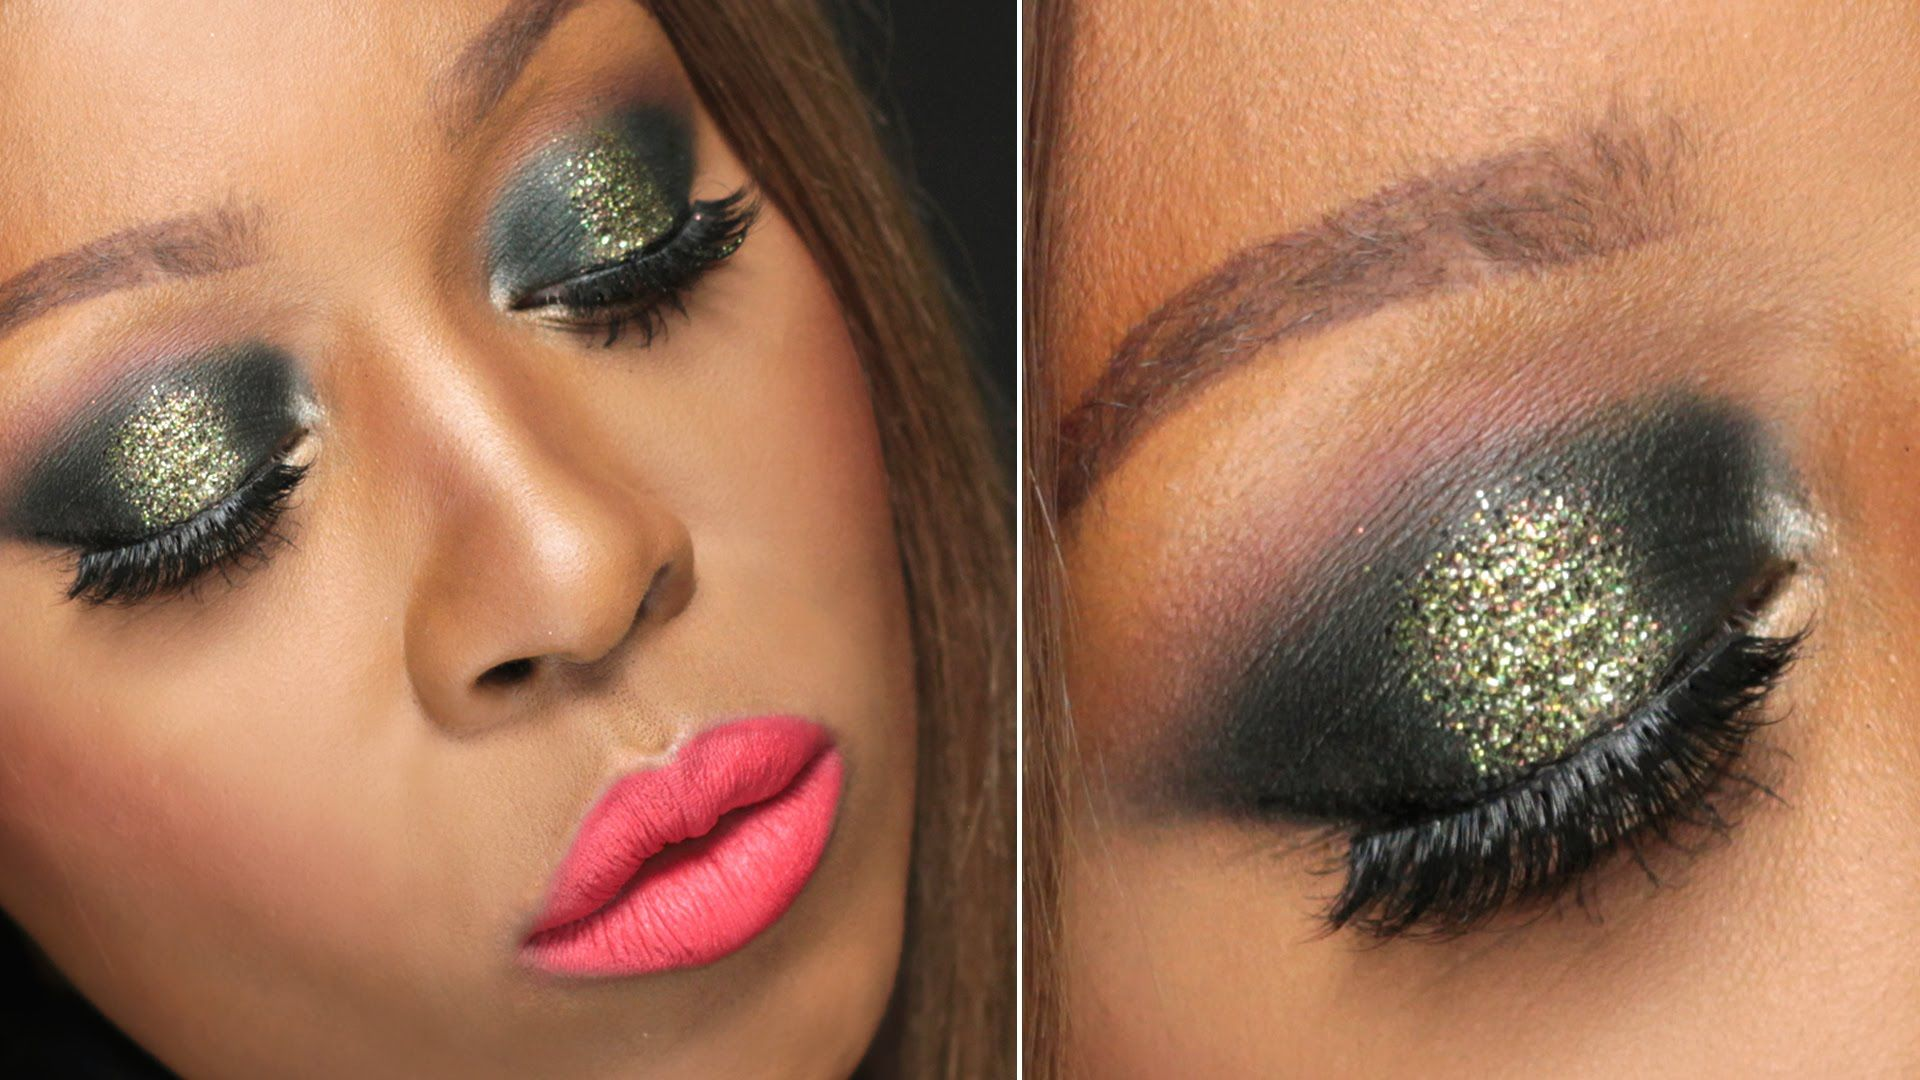 New years eve party makeup tutorial 2014 nye gold glitter smokey new years eve party makeup tutorial 2014 nye gold glitter smokey eye baditri Images